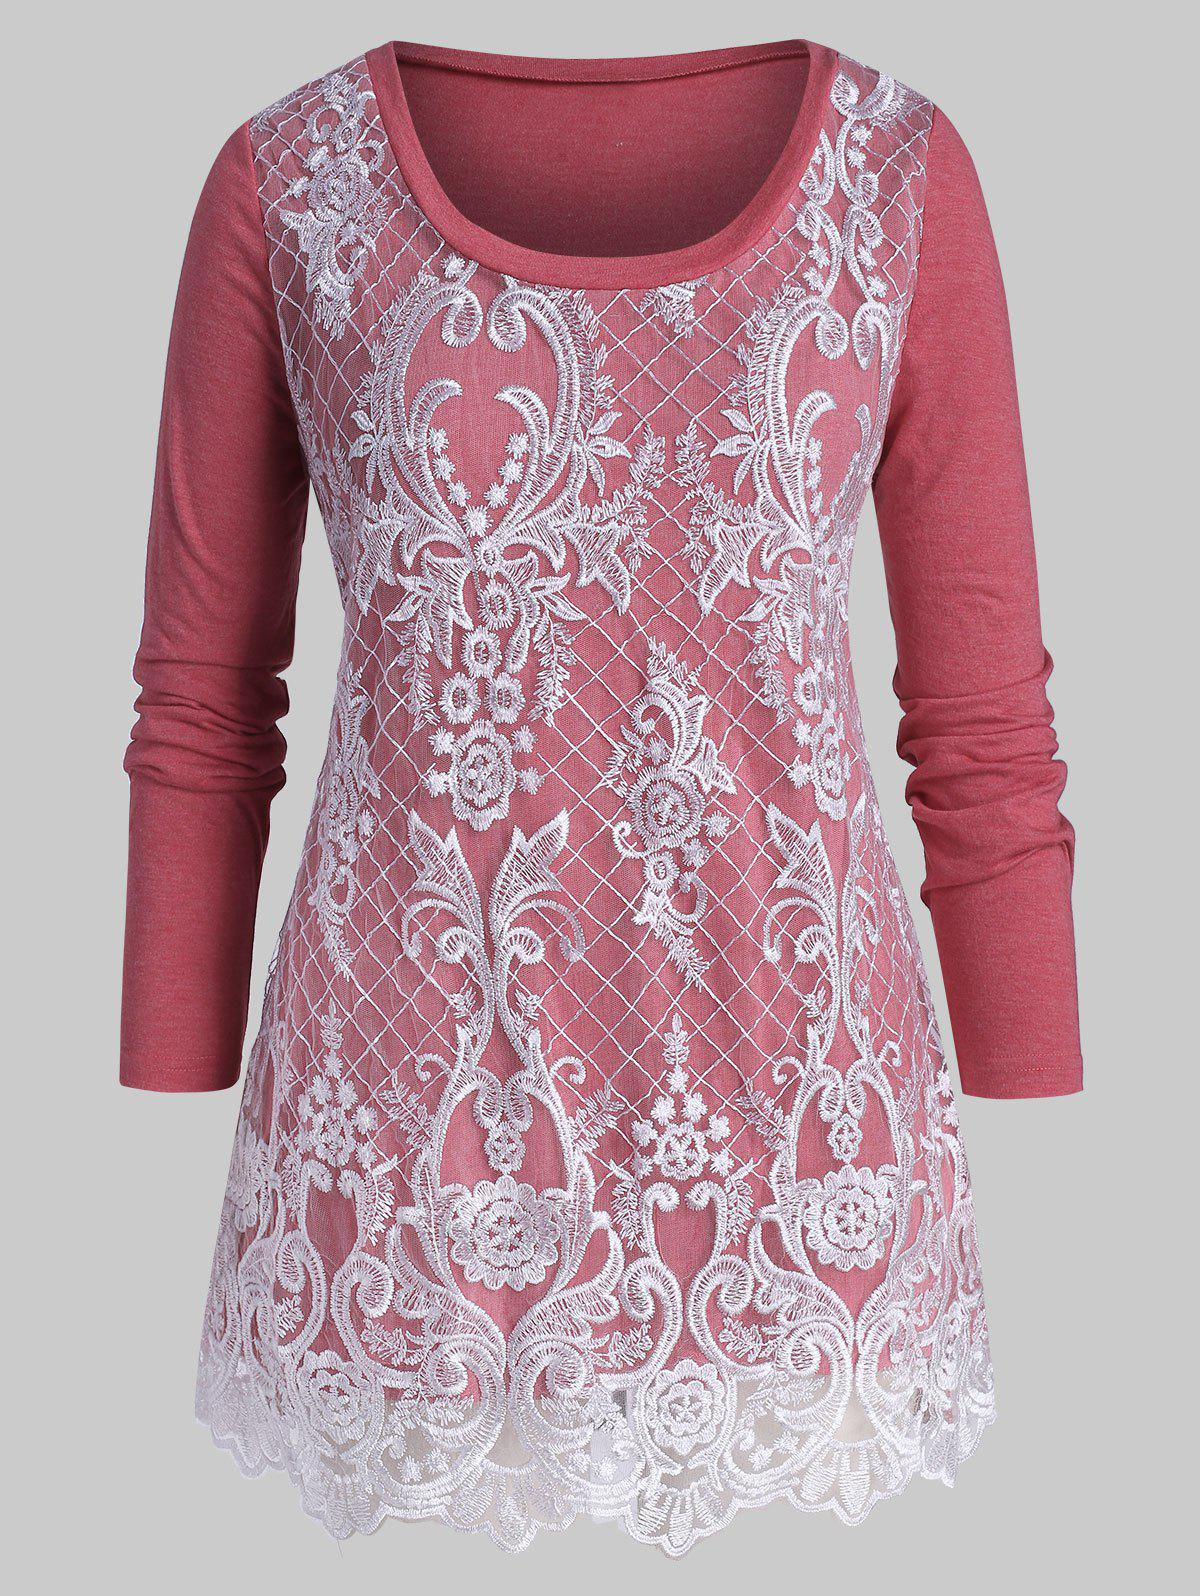 New Plus Size Floral Lace Embroidery Layered T Shirt